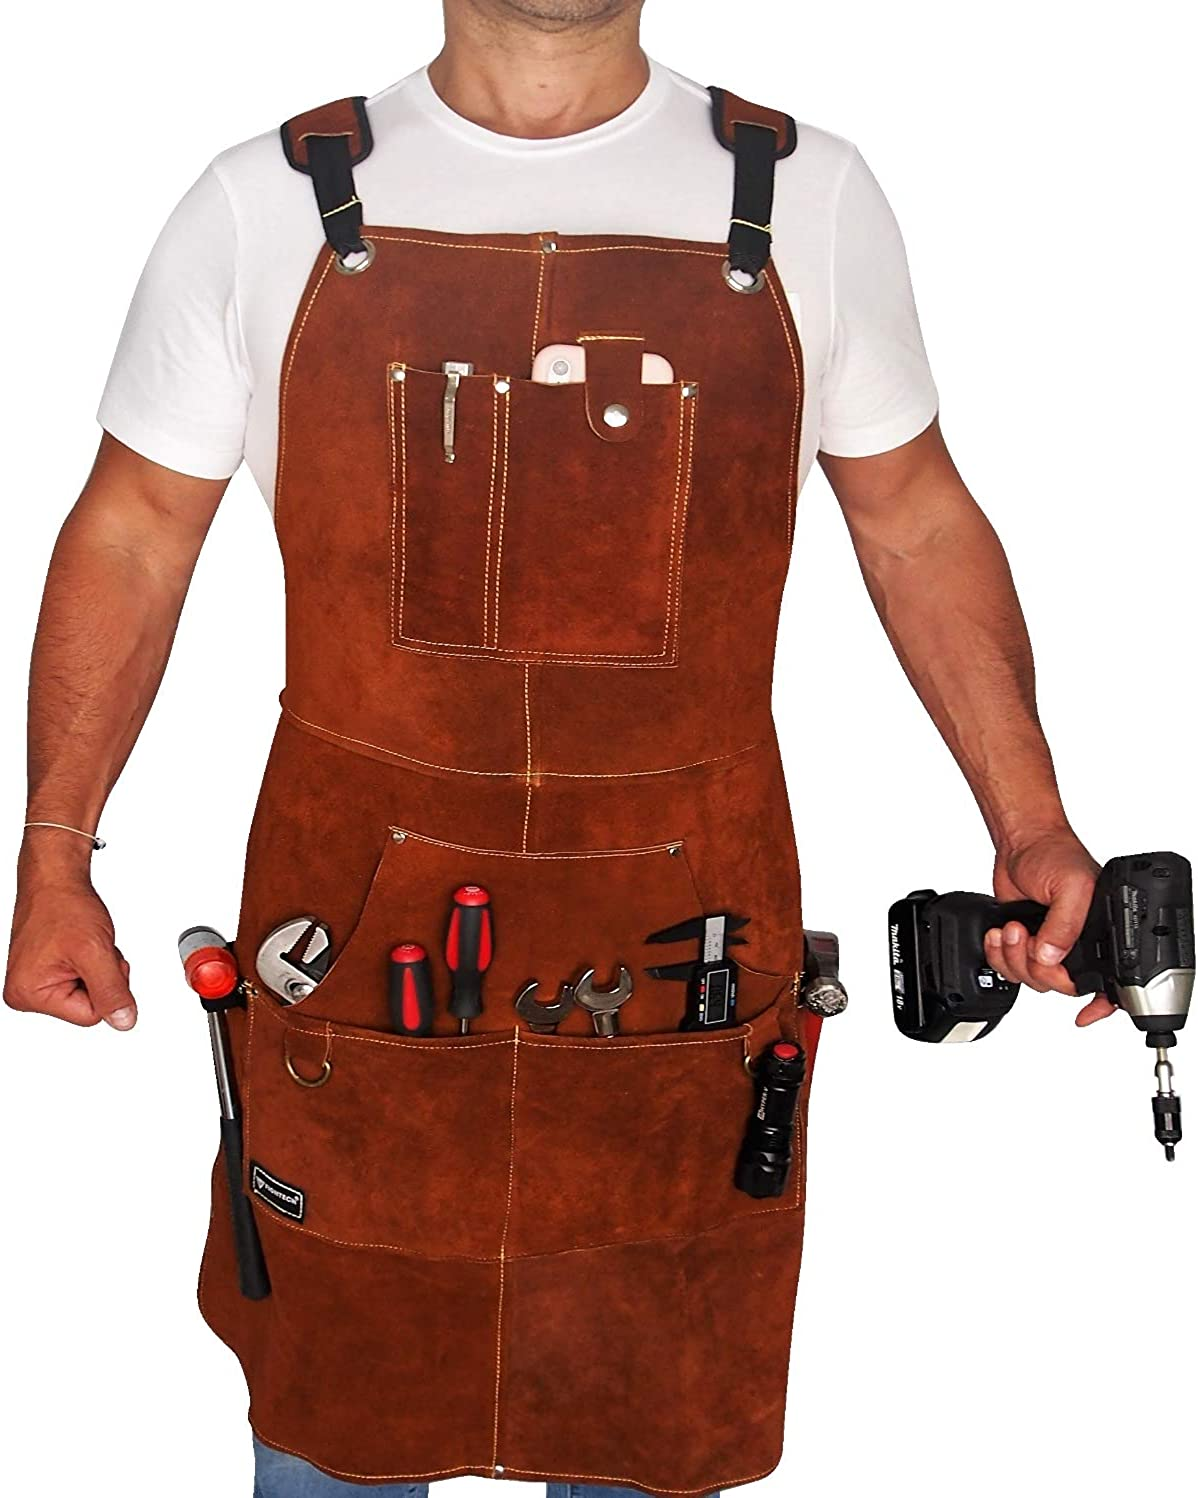 FIGHTECH Leather Work Apron with Tool Pockets for Men, Women | 36 x 24 | Welding Apron with Kevlar Stitching Ideal for Woodworkers, Blacksmiths, Gardeners, Mechanics, BBQ | Heavy Duty | Adjustable M to XXL